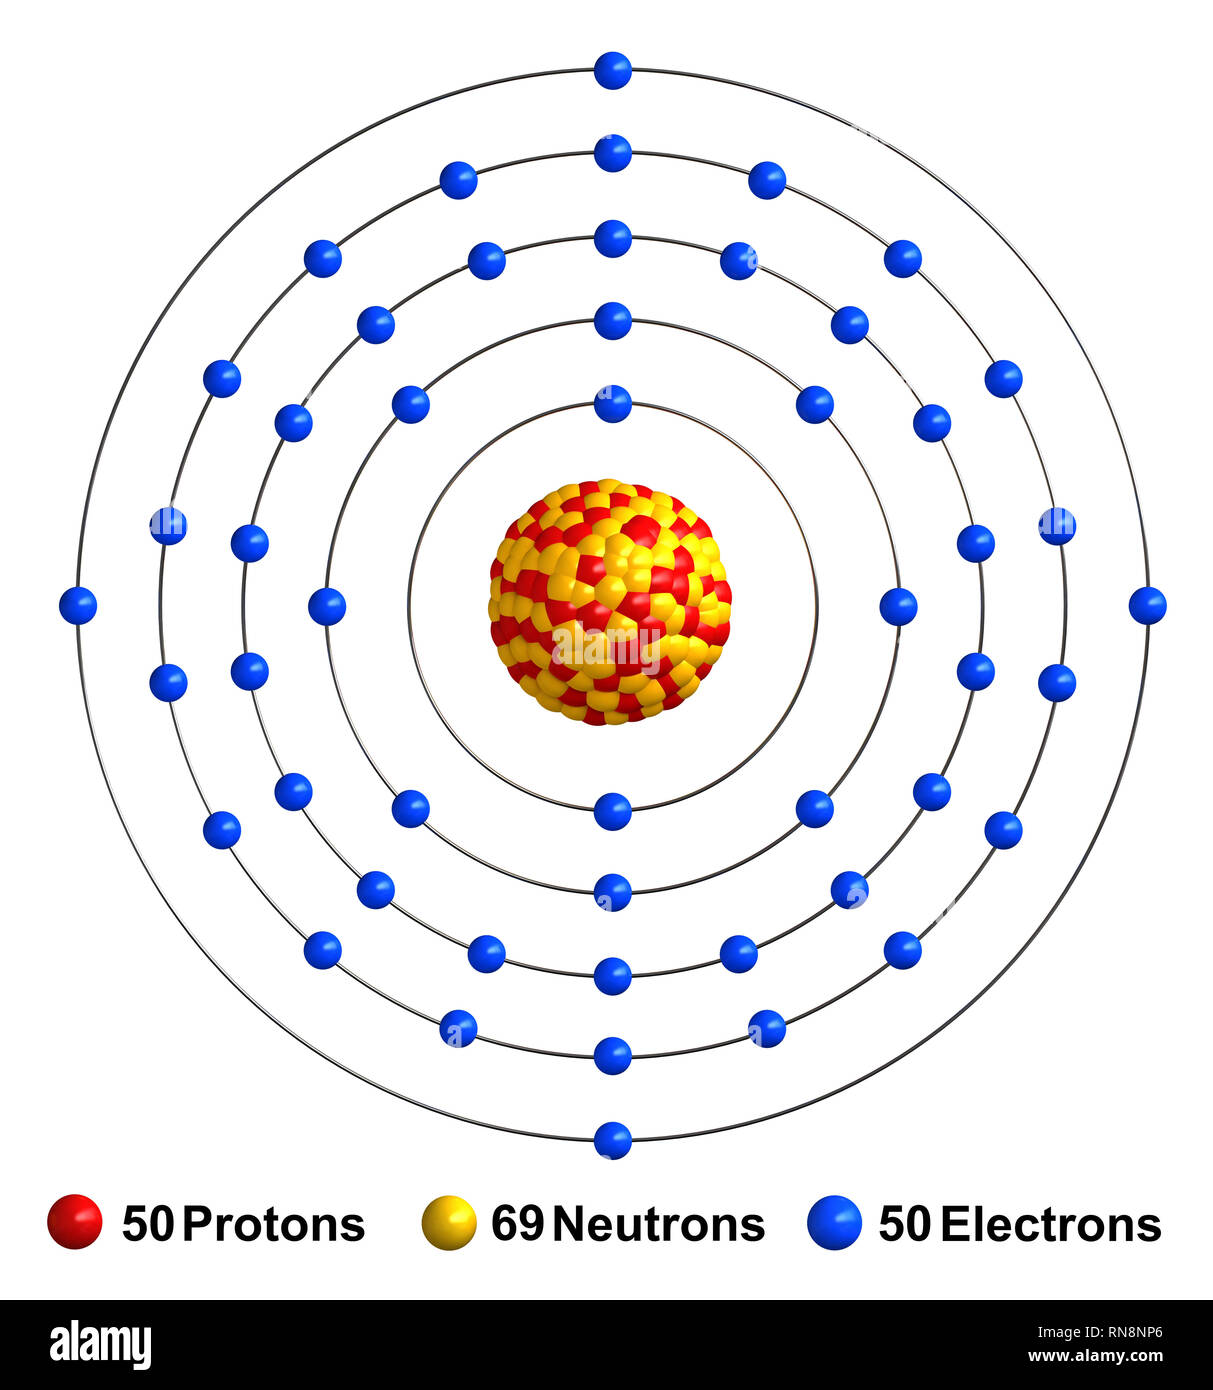 hight resolution of 3d render of atom structure of tin isolated over white background protons are represented as red spheres neutron as yellow spheres electrons as blue